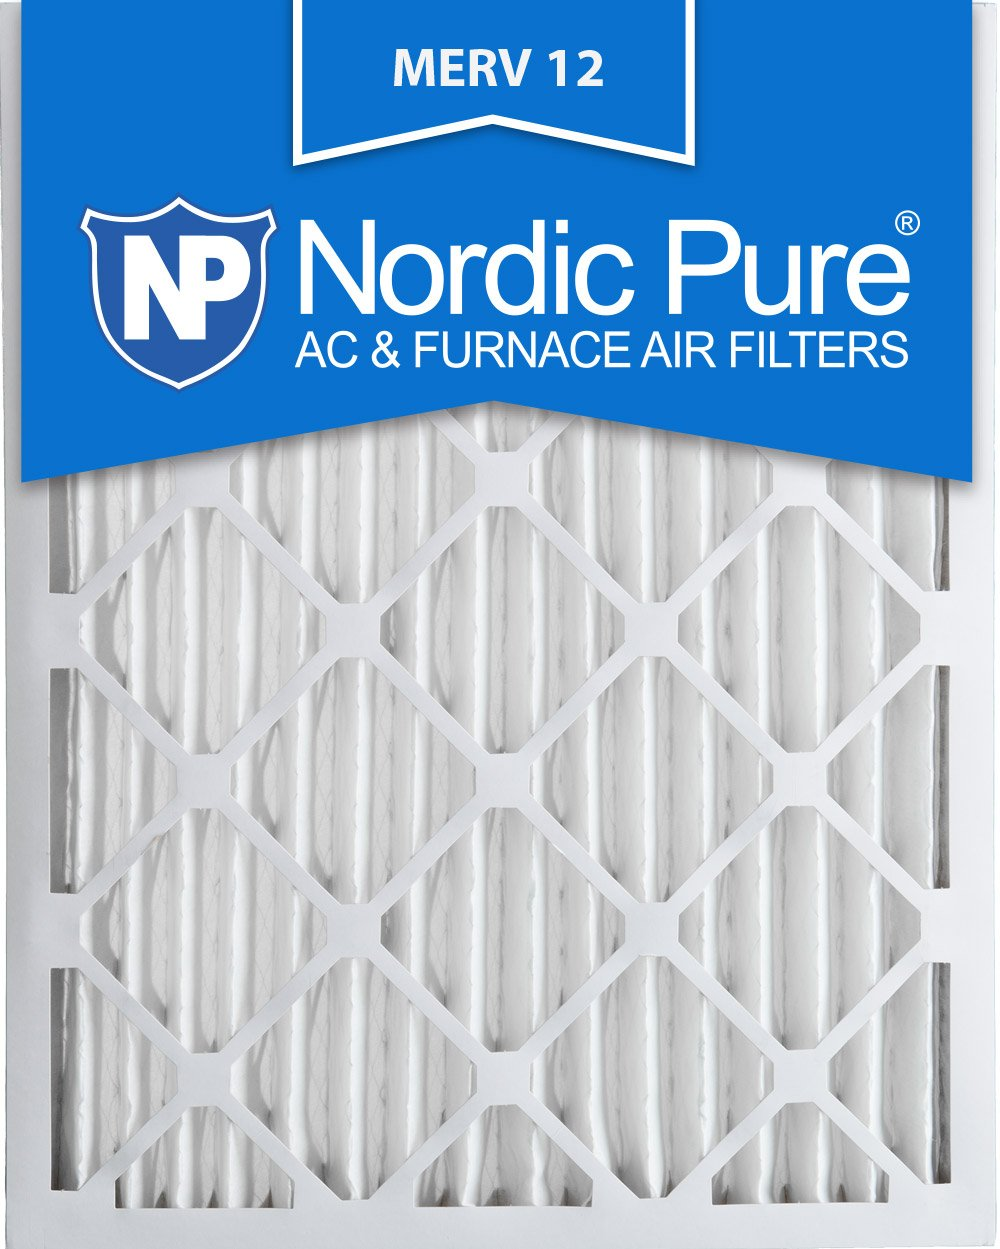 Nordic Pure 16x25x2 MERV 12 Pleated AC Furnace Air Filters 16x25x2 3 Pack